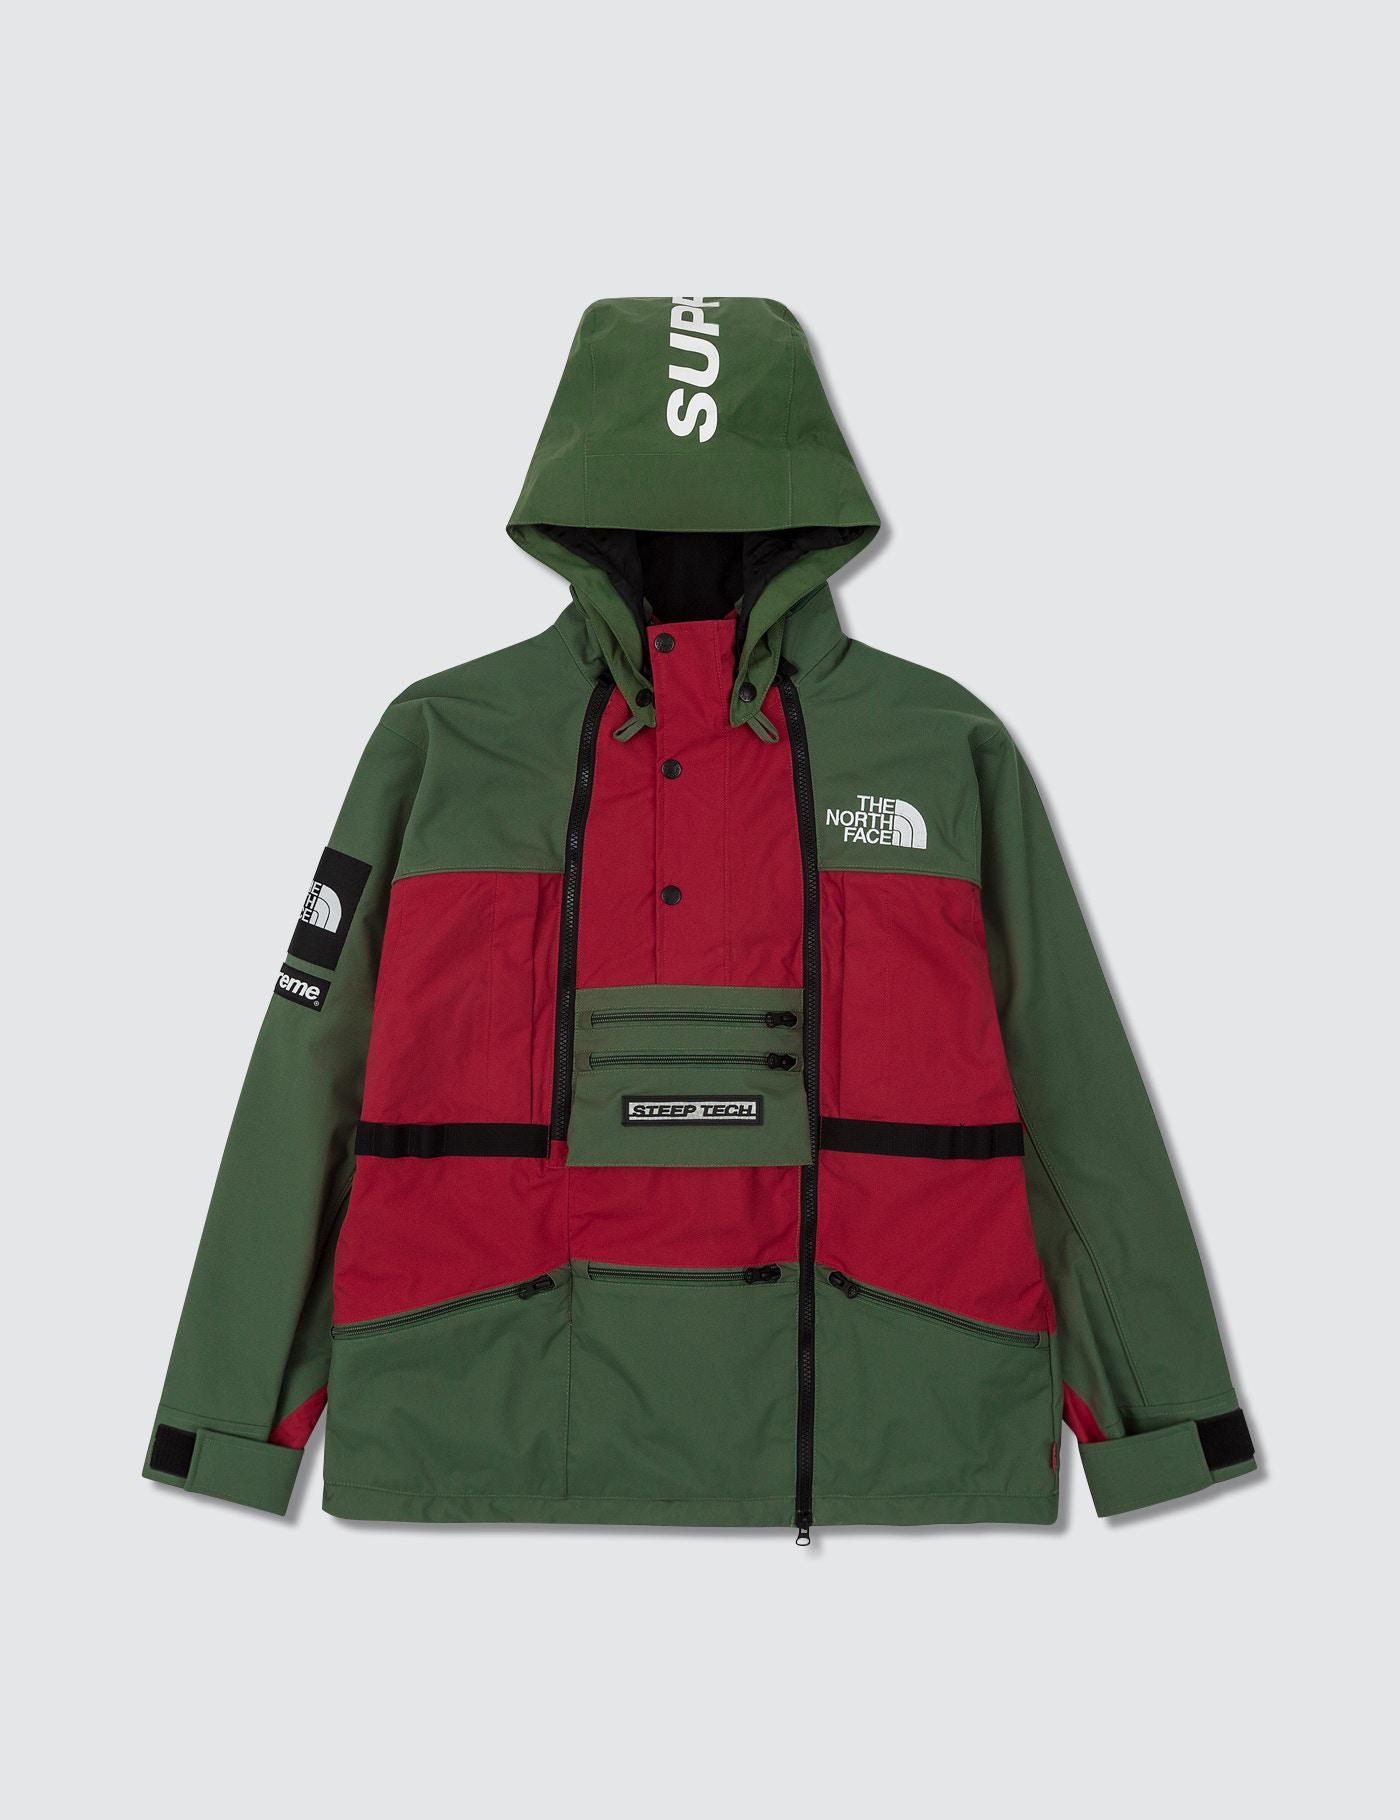 f0f94d29fc Lyst - Supreme X The North Face Steep Tech Hooded Jacket in Green ...